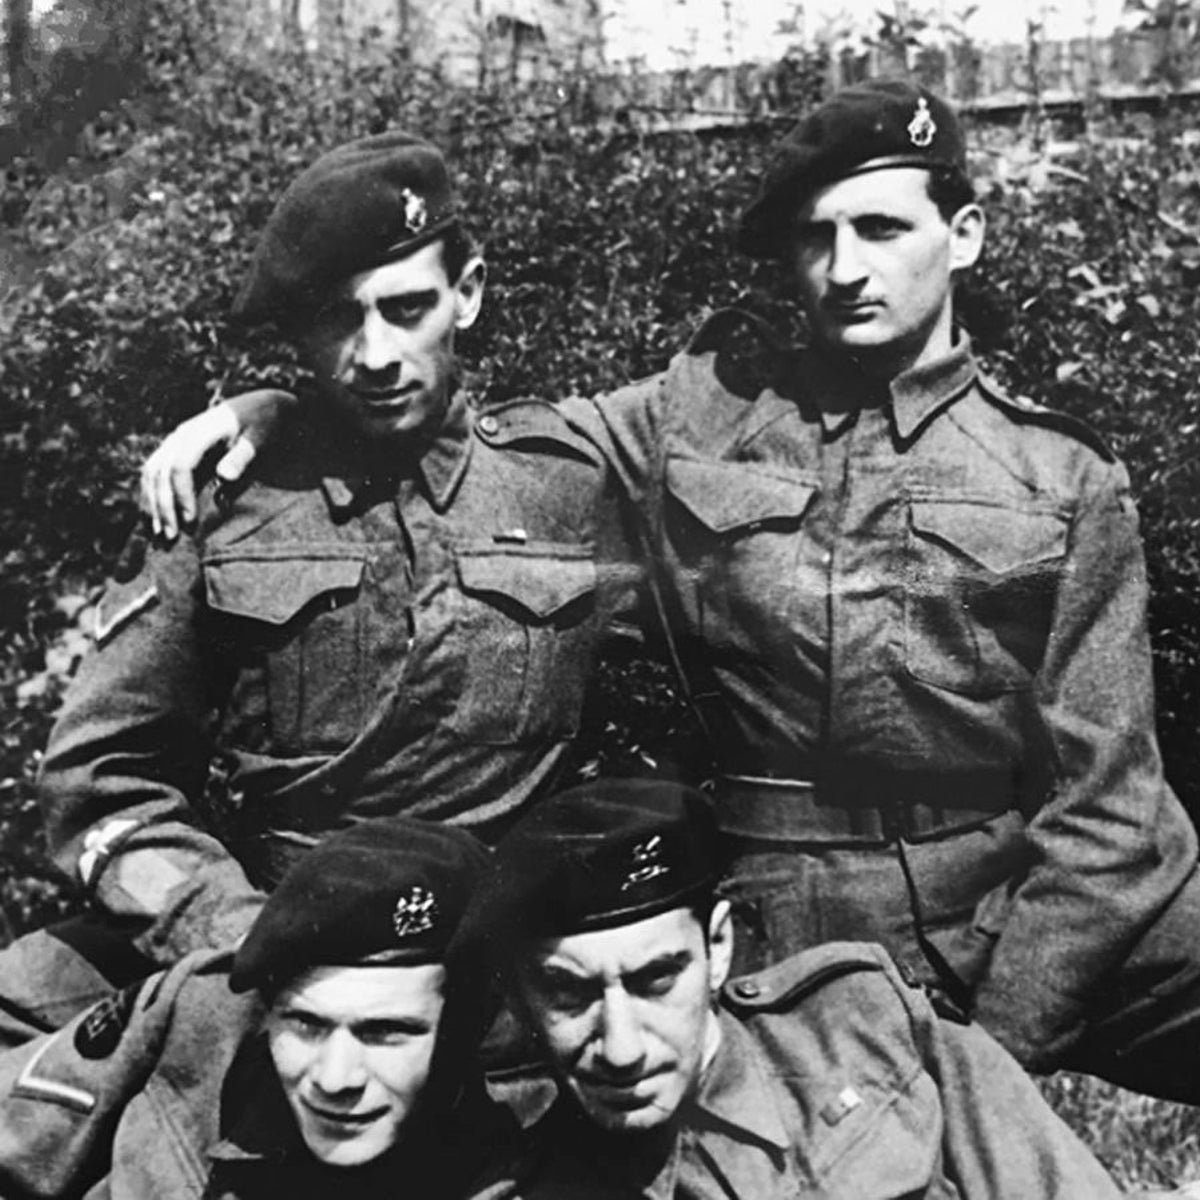 X Troopers Maurice Latimer, Tommy Swinton, Oscar O'Neill and Manfred Gans, 1943.